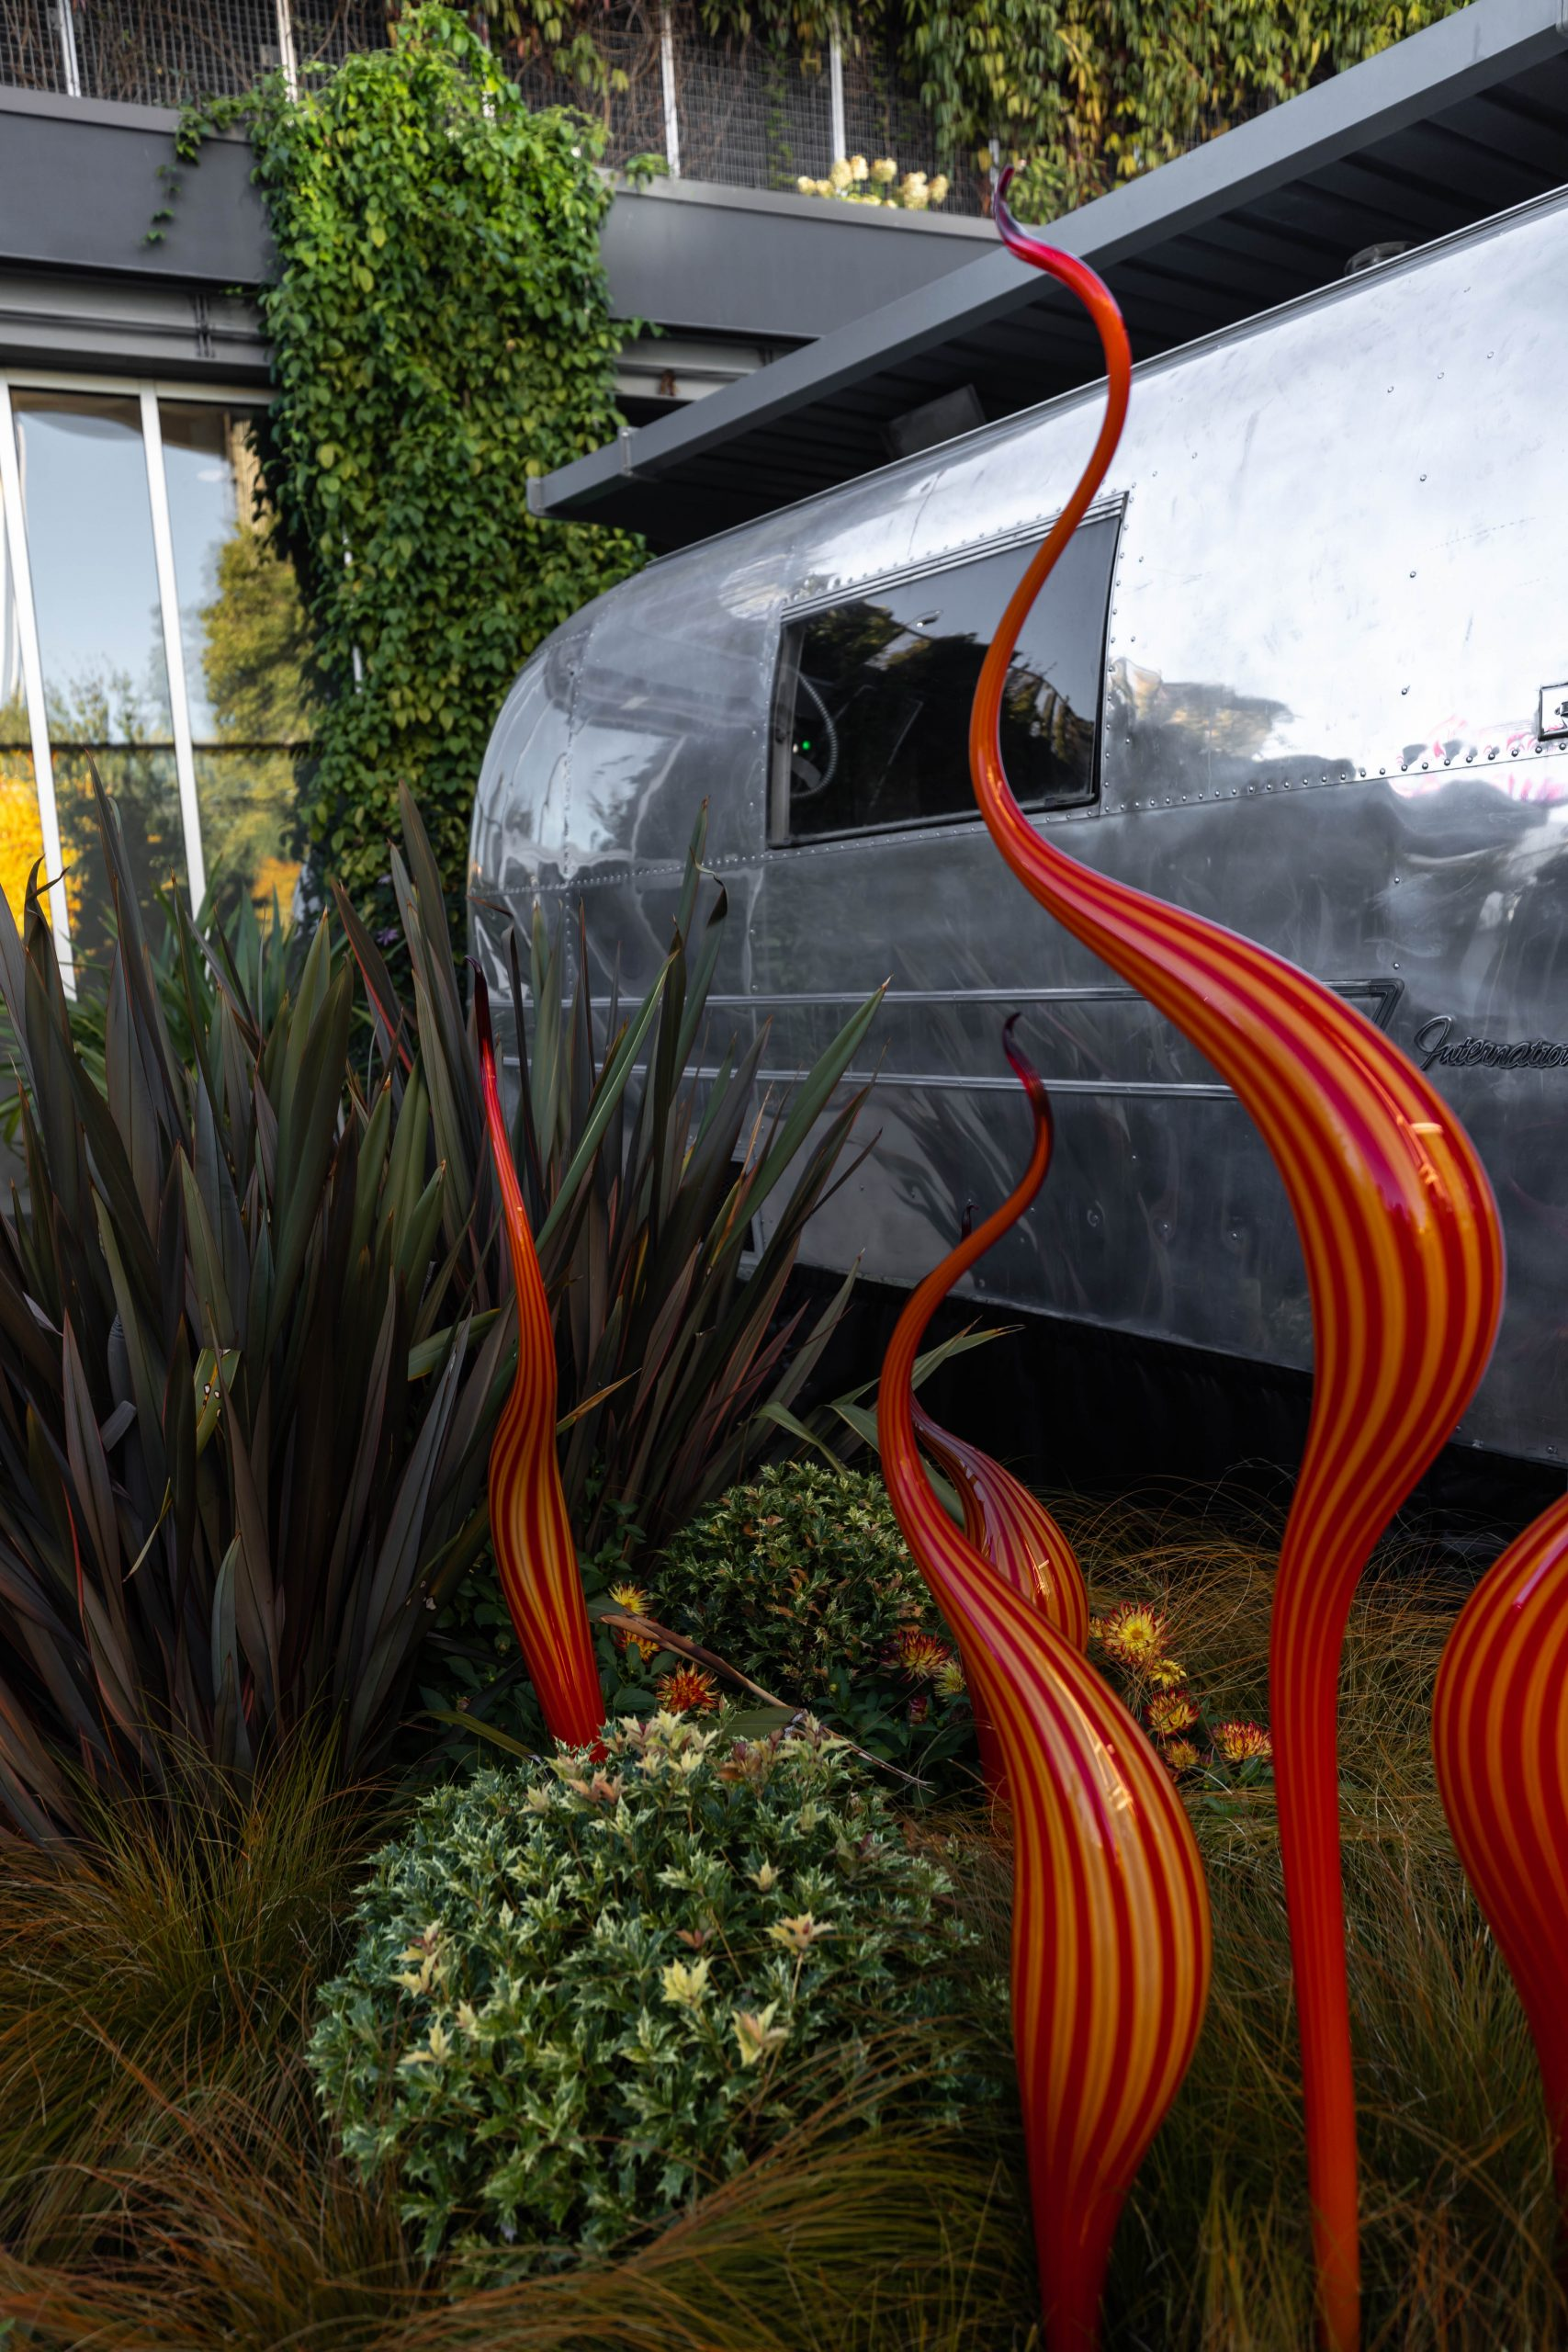 The Chihuly Garden & Glass Museum in Seattle Washington by Annie Fairfax